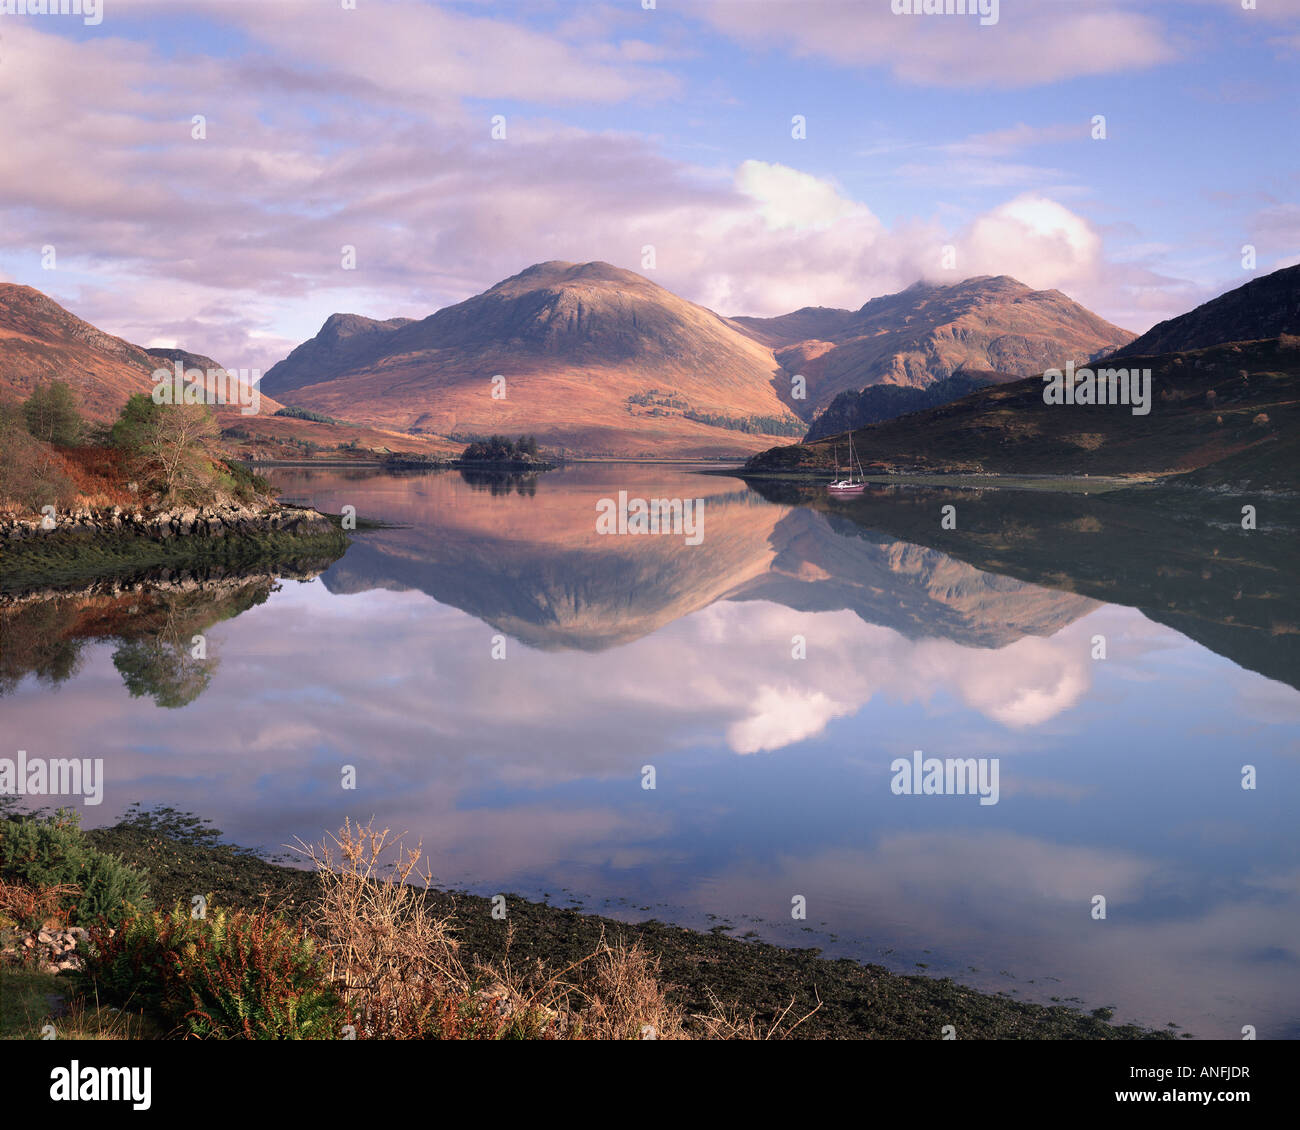 GB - SCOTLAND:  Evening at Loch Long - Stock Image